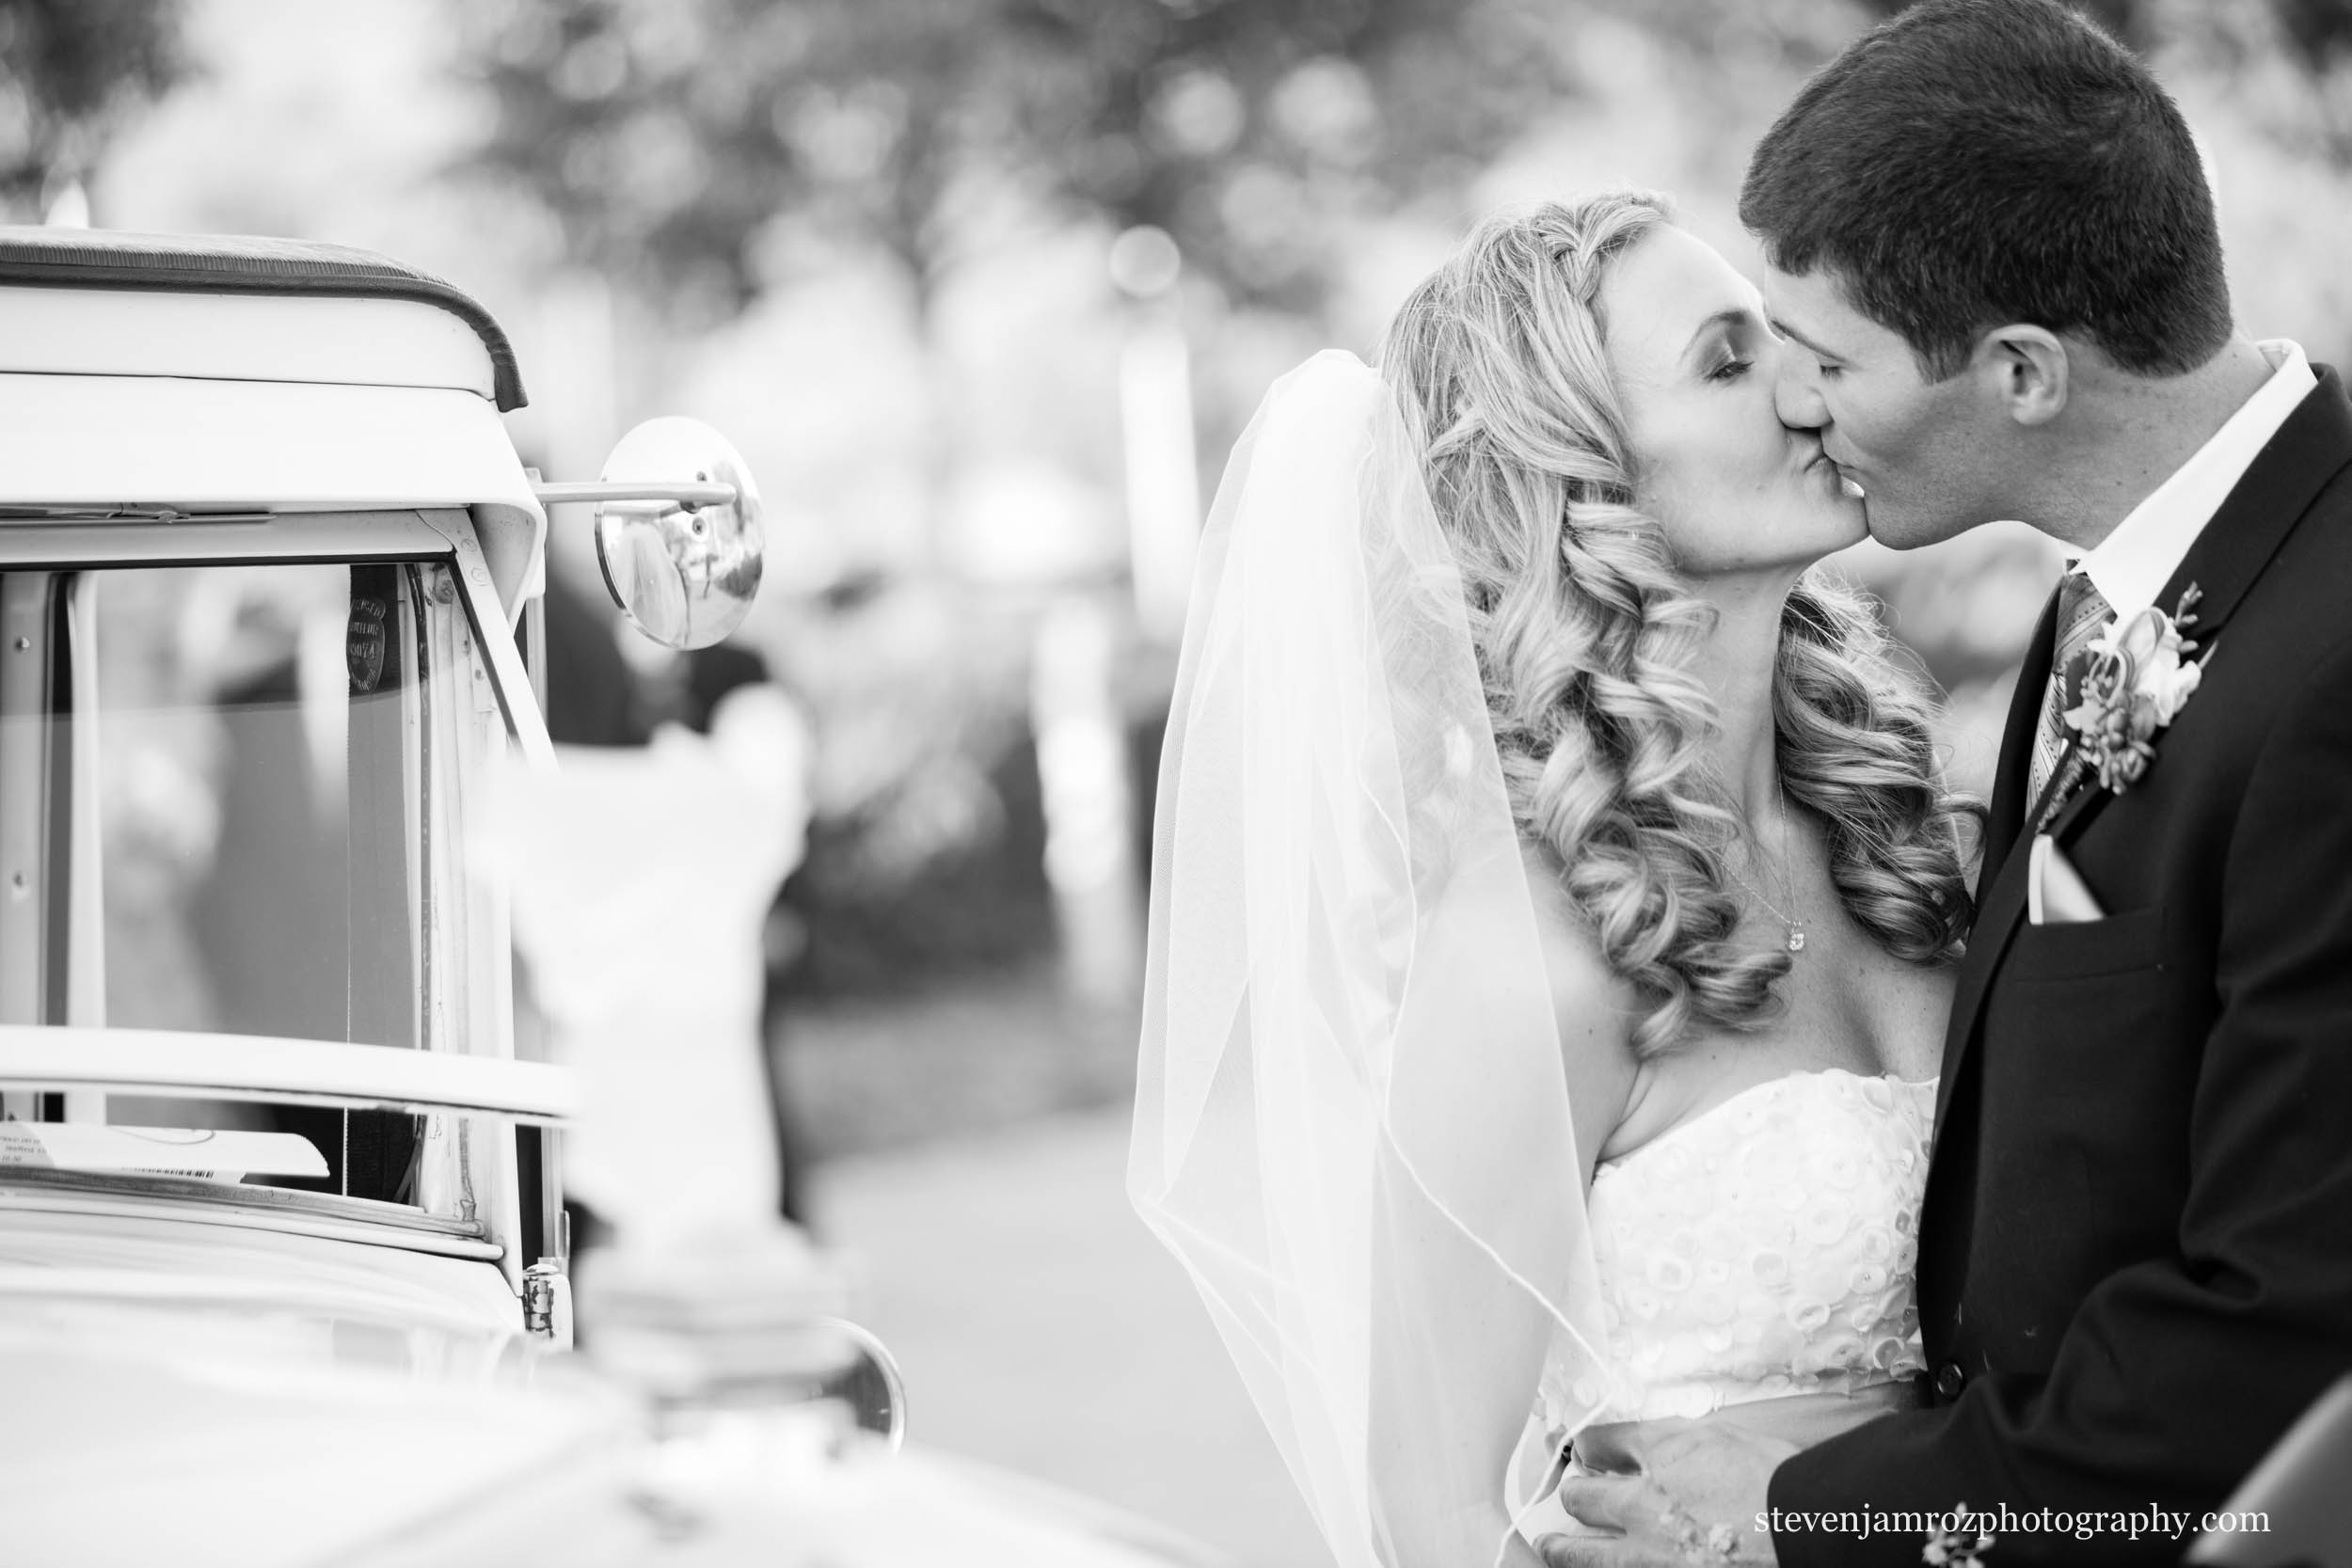 vintage-car-wedding-raleigh-nc-steven-jamroz-photography-0135.jpg